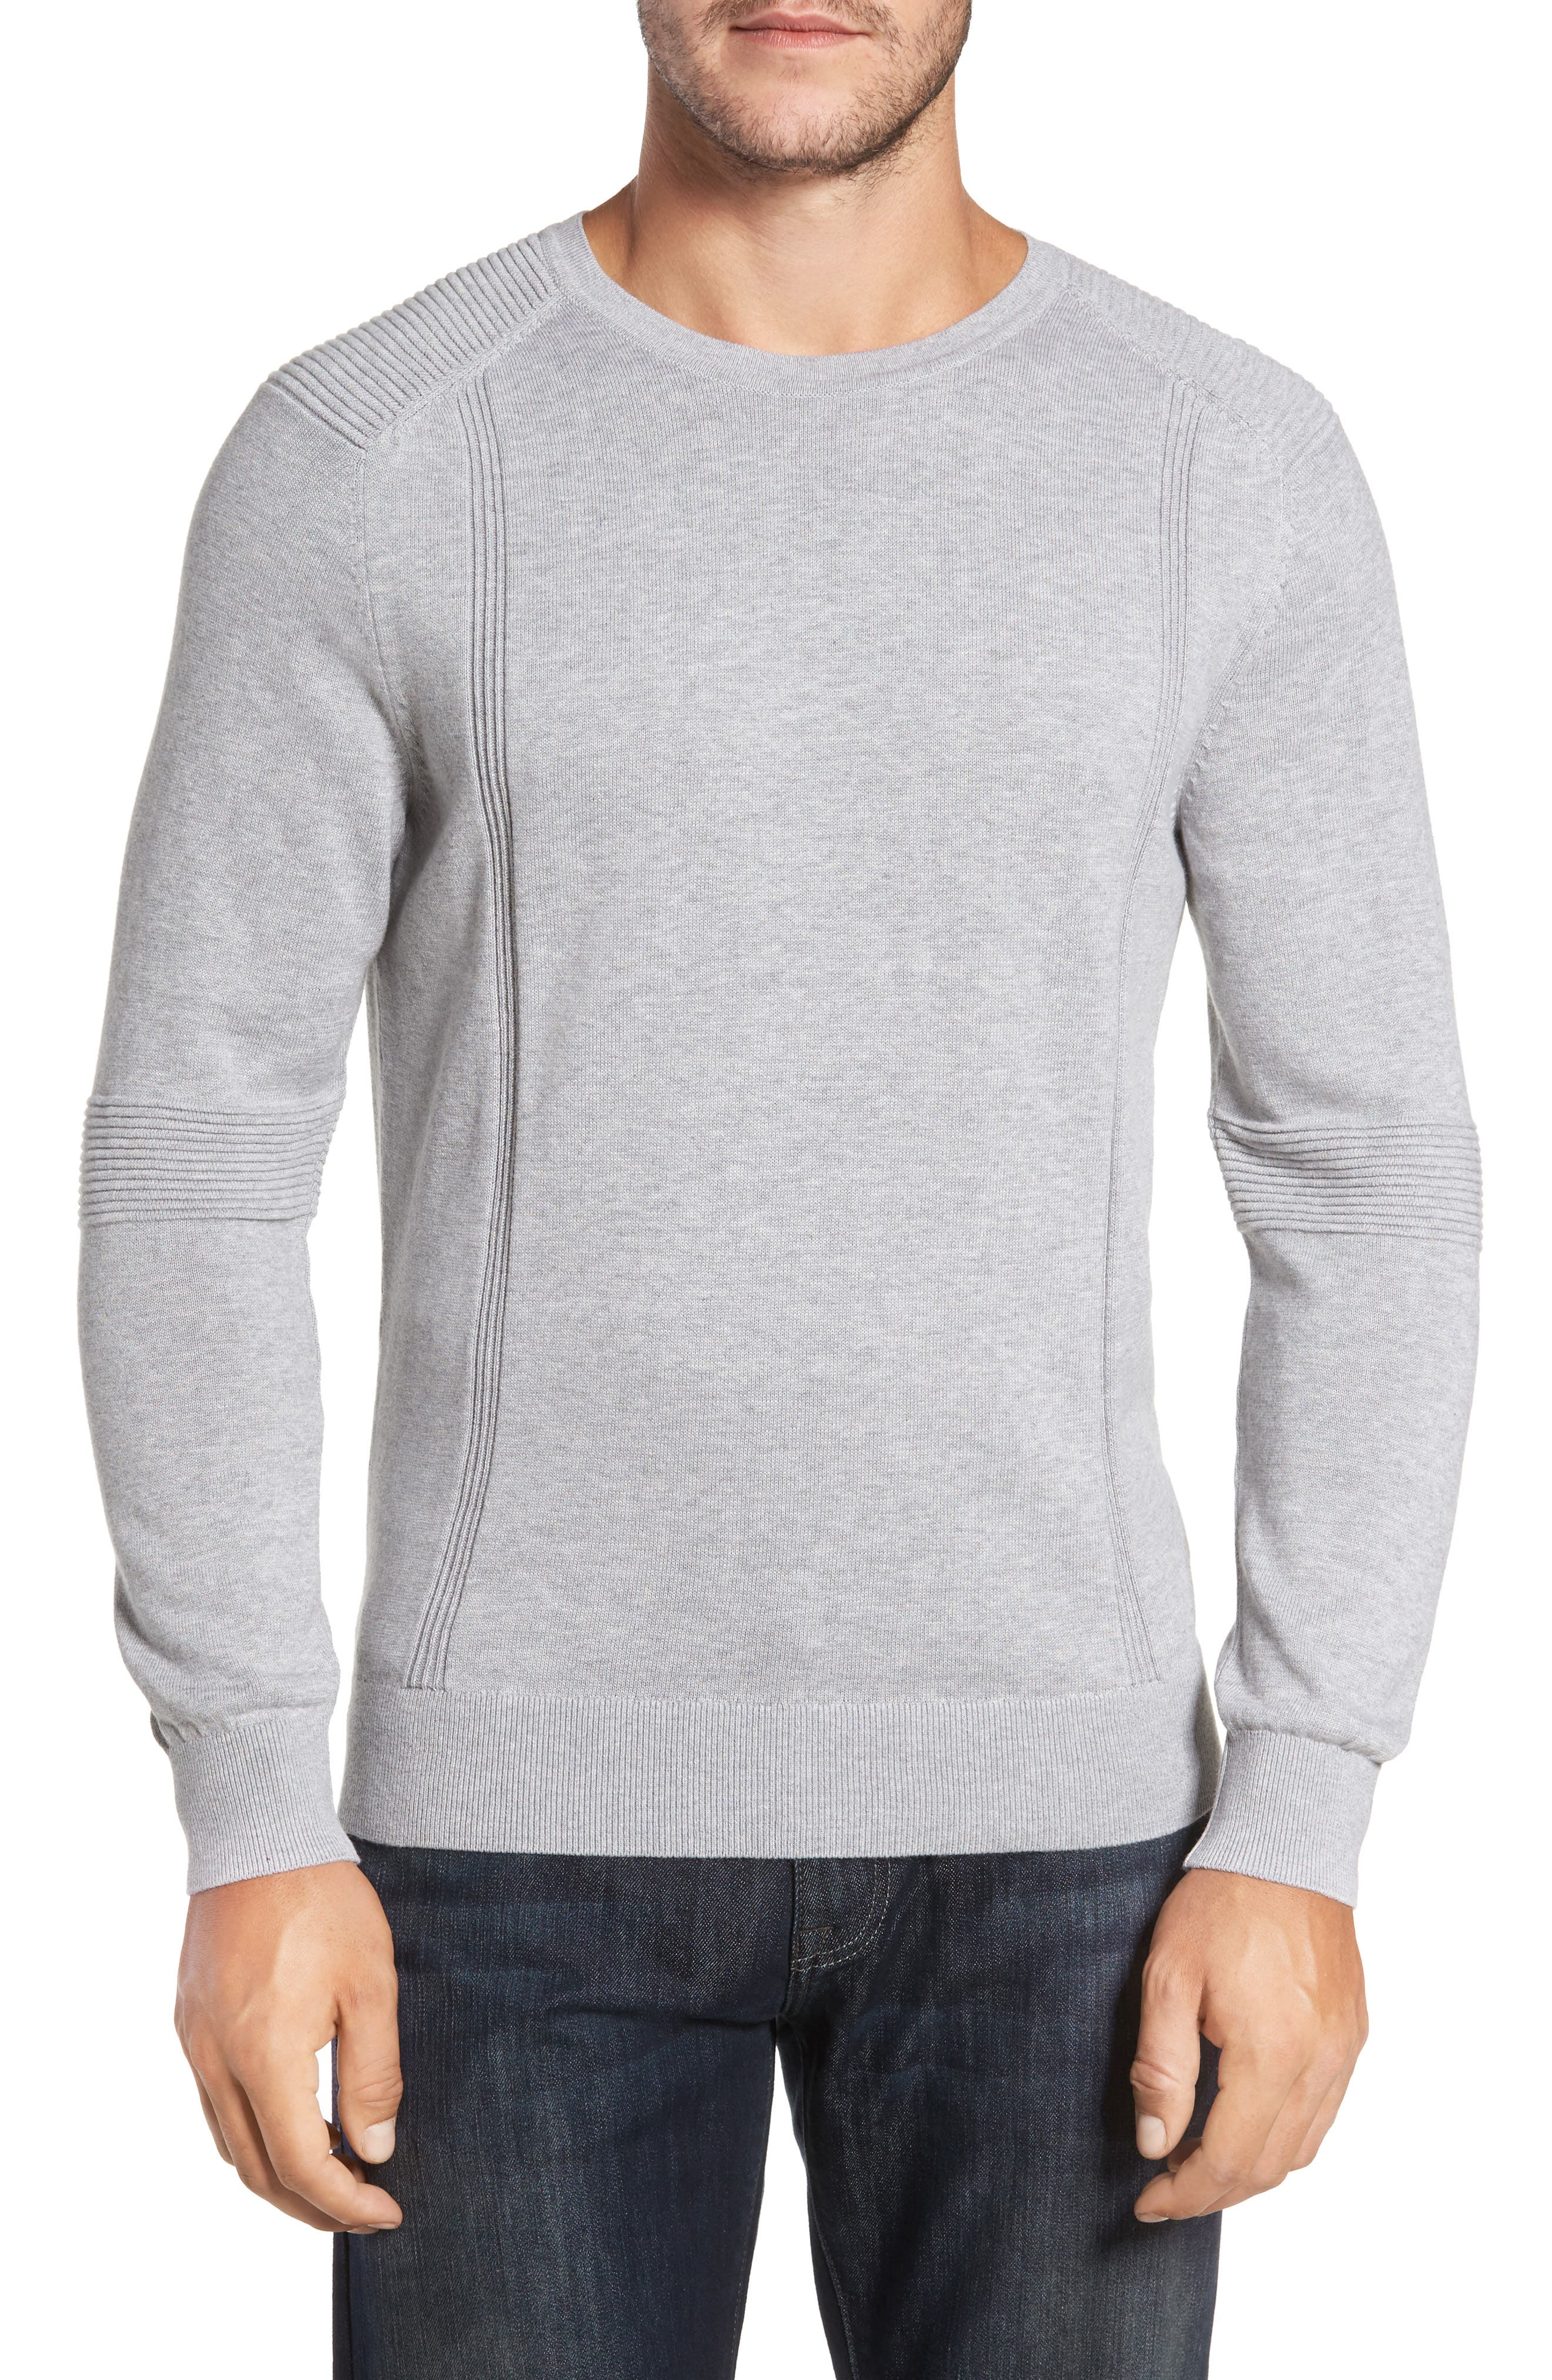 Bobby Jones R18 Chopper Rib Detail Sweater